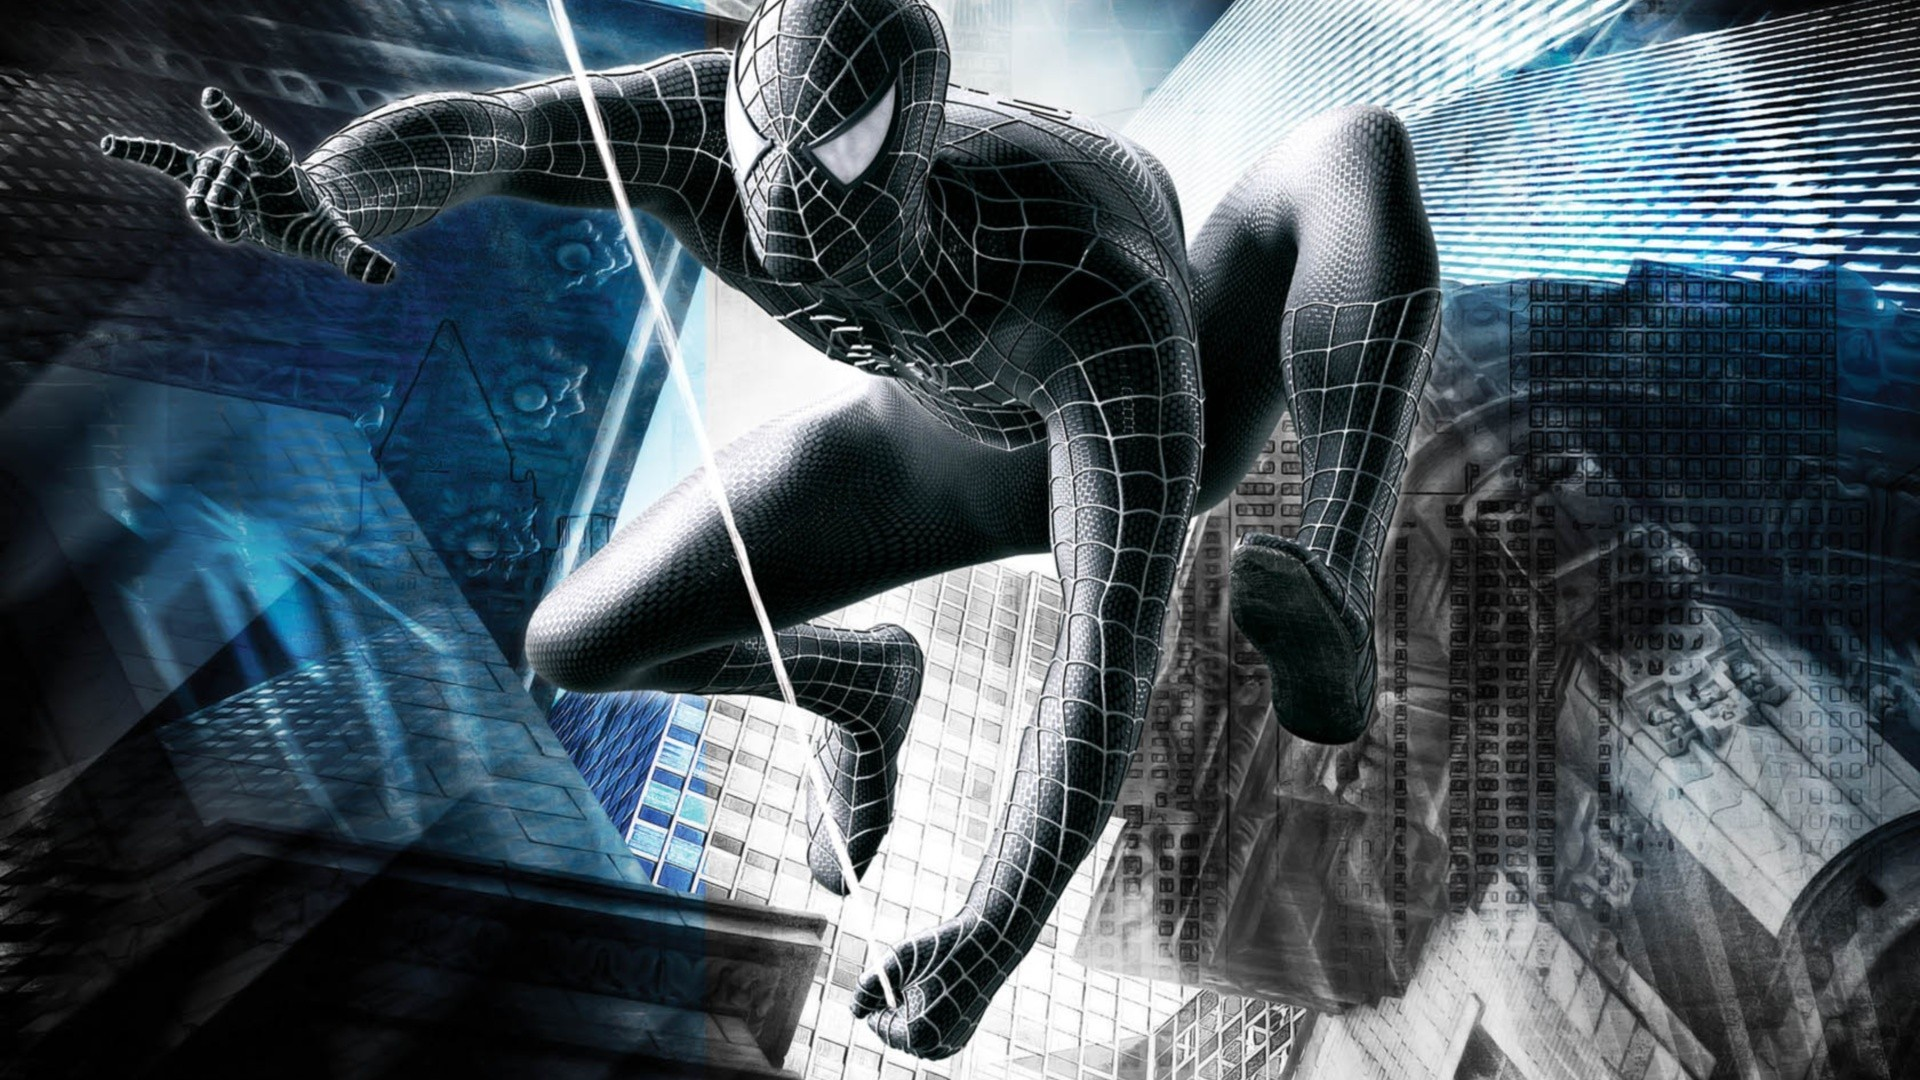 Spiderman 3 Wallpapers - WallpaperSafari